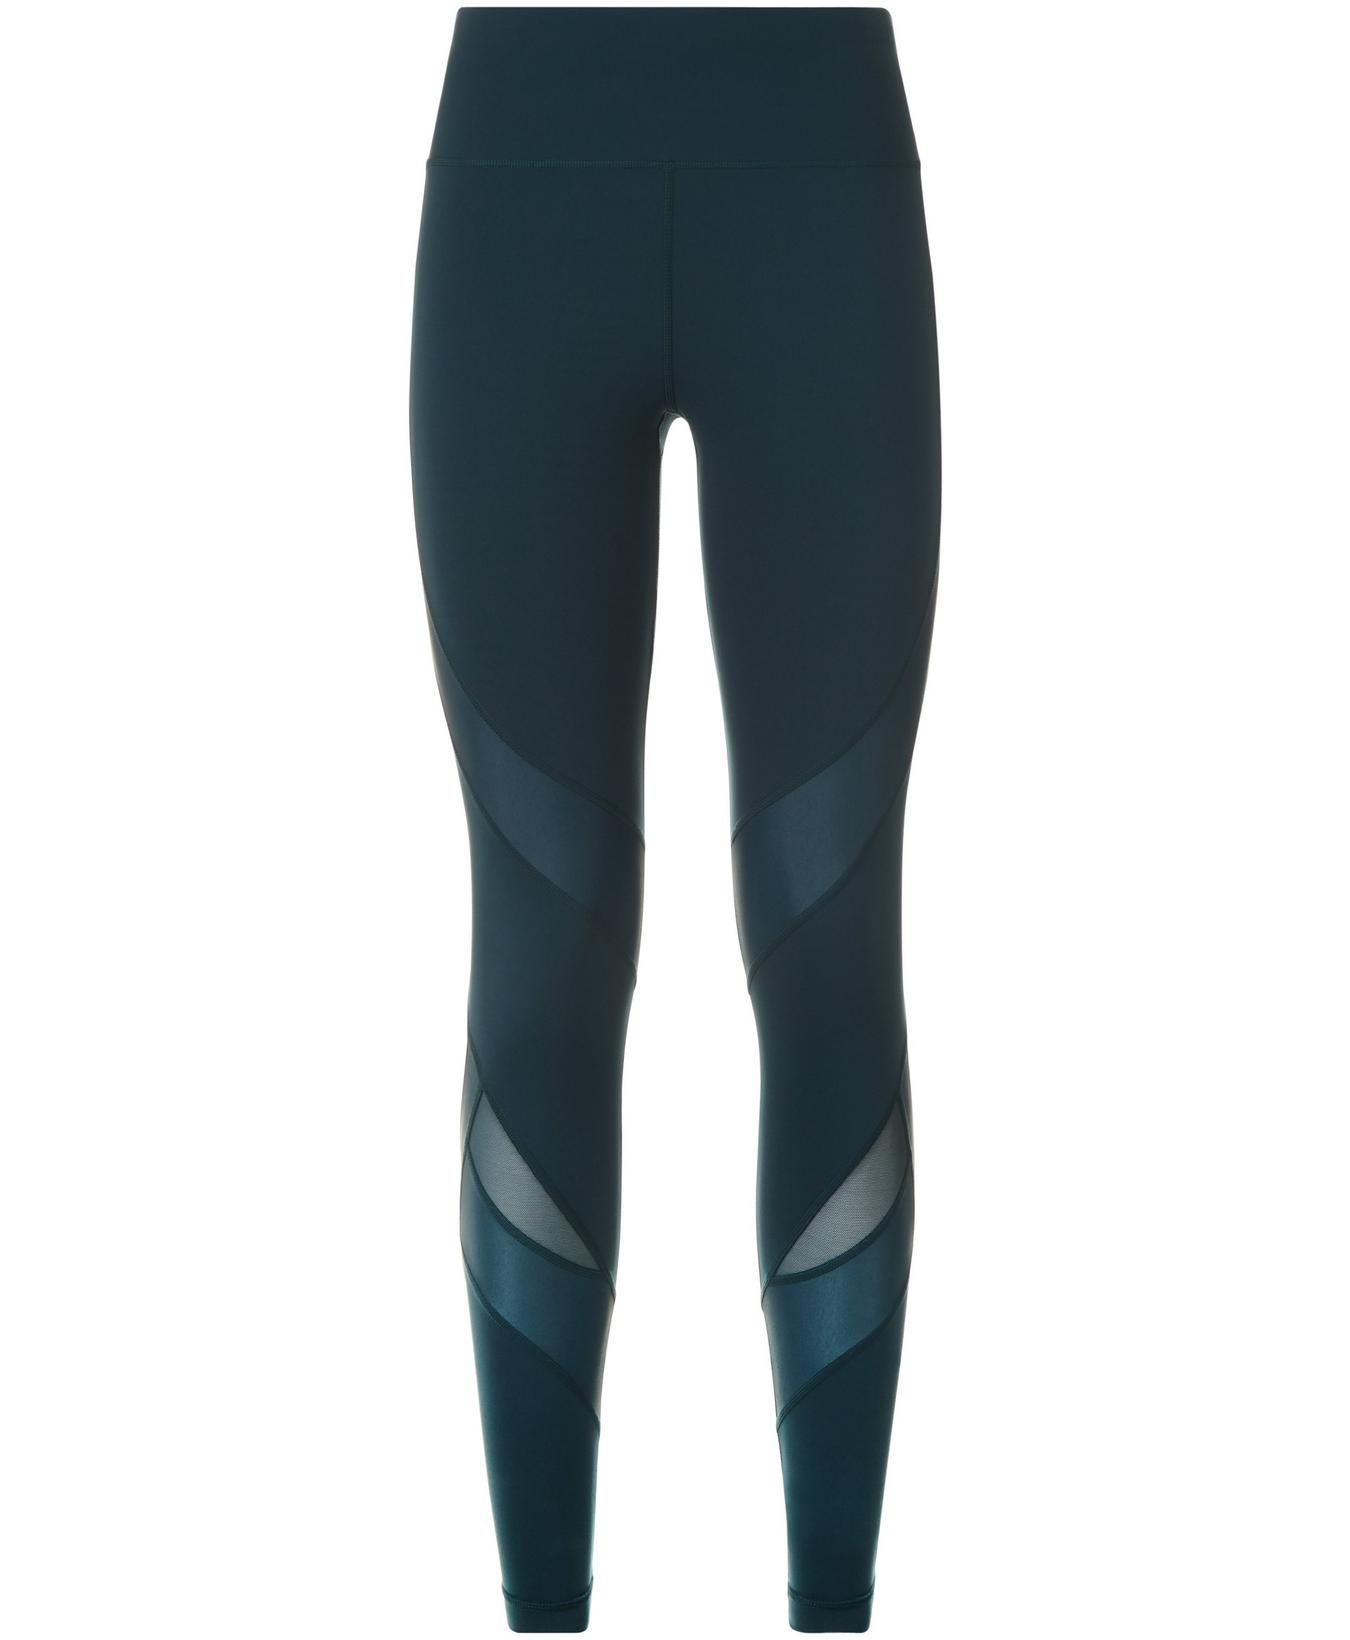 3542efb40102da Power Wetlook Mesh Workout Leggings - Midnight Teal | Women's Leggings |  Sweaty Betty